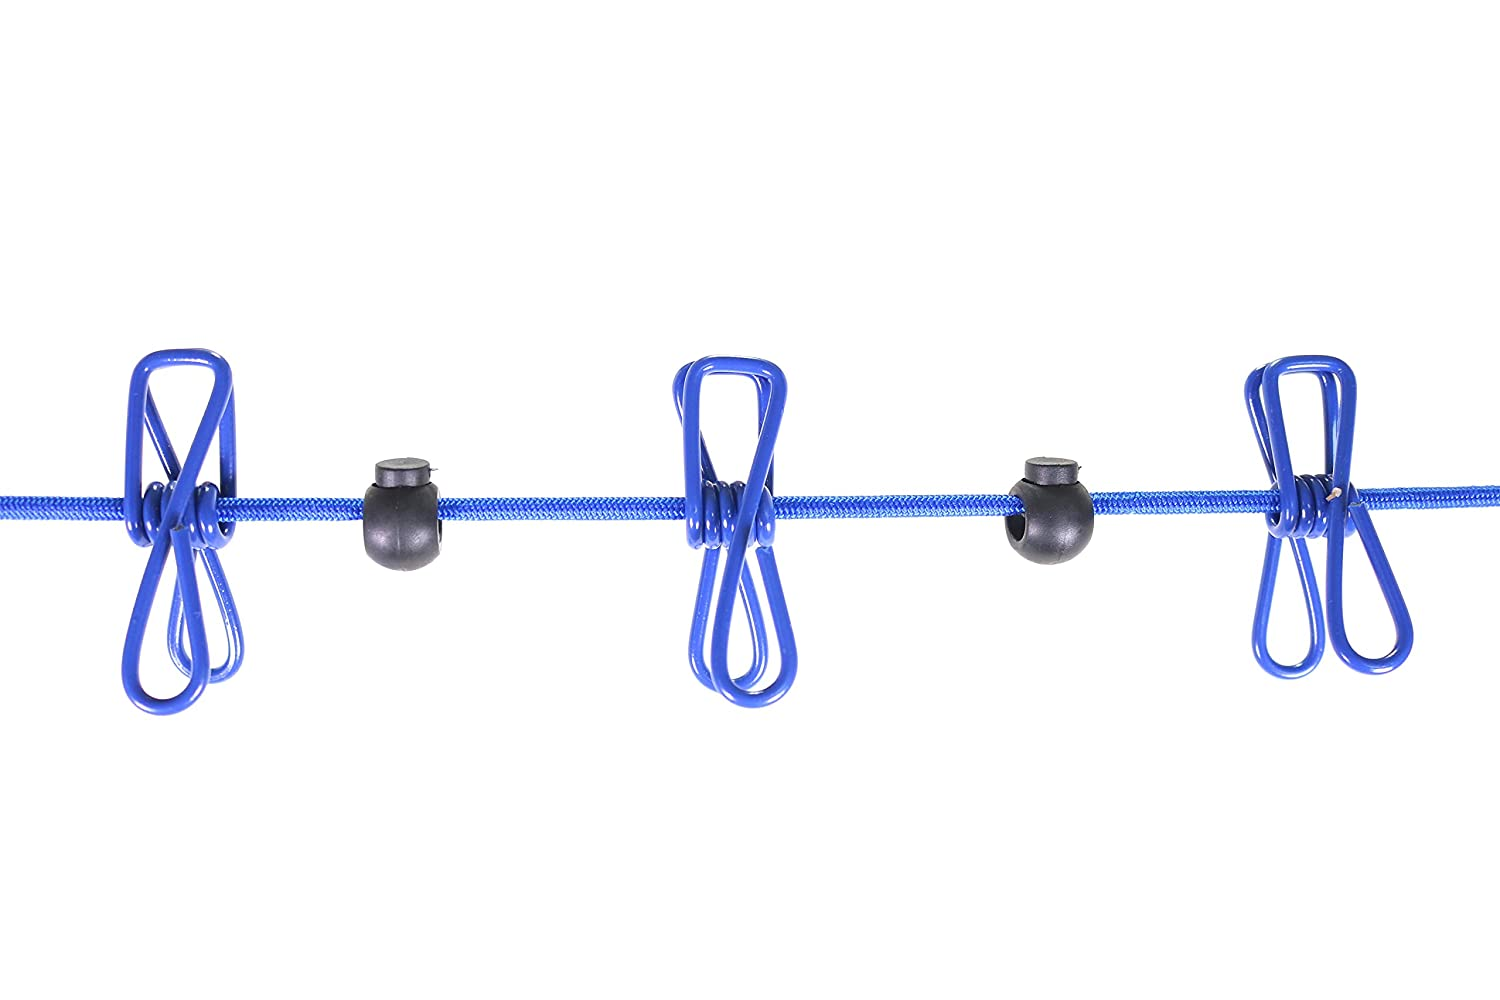 Kinekulle Portable Travel Clothesline Elastic Adjustable with 12 Stainless Steel Clothespins for Outdoor and Indoor Use Blue Comes with 5 Compressed Towels and one portable bag